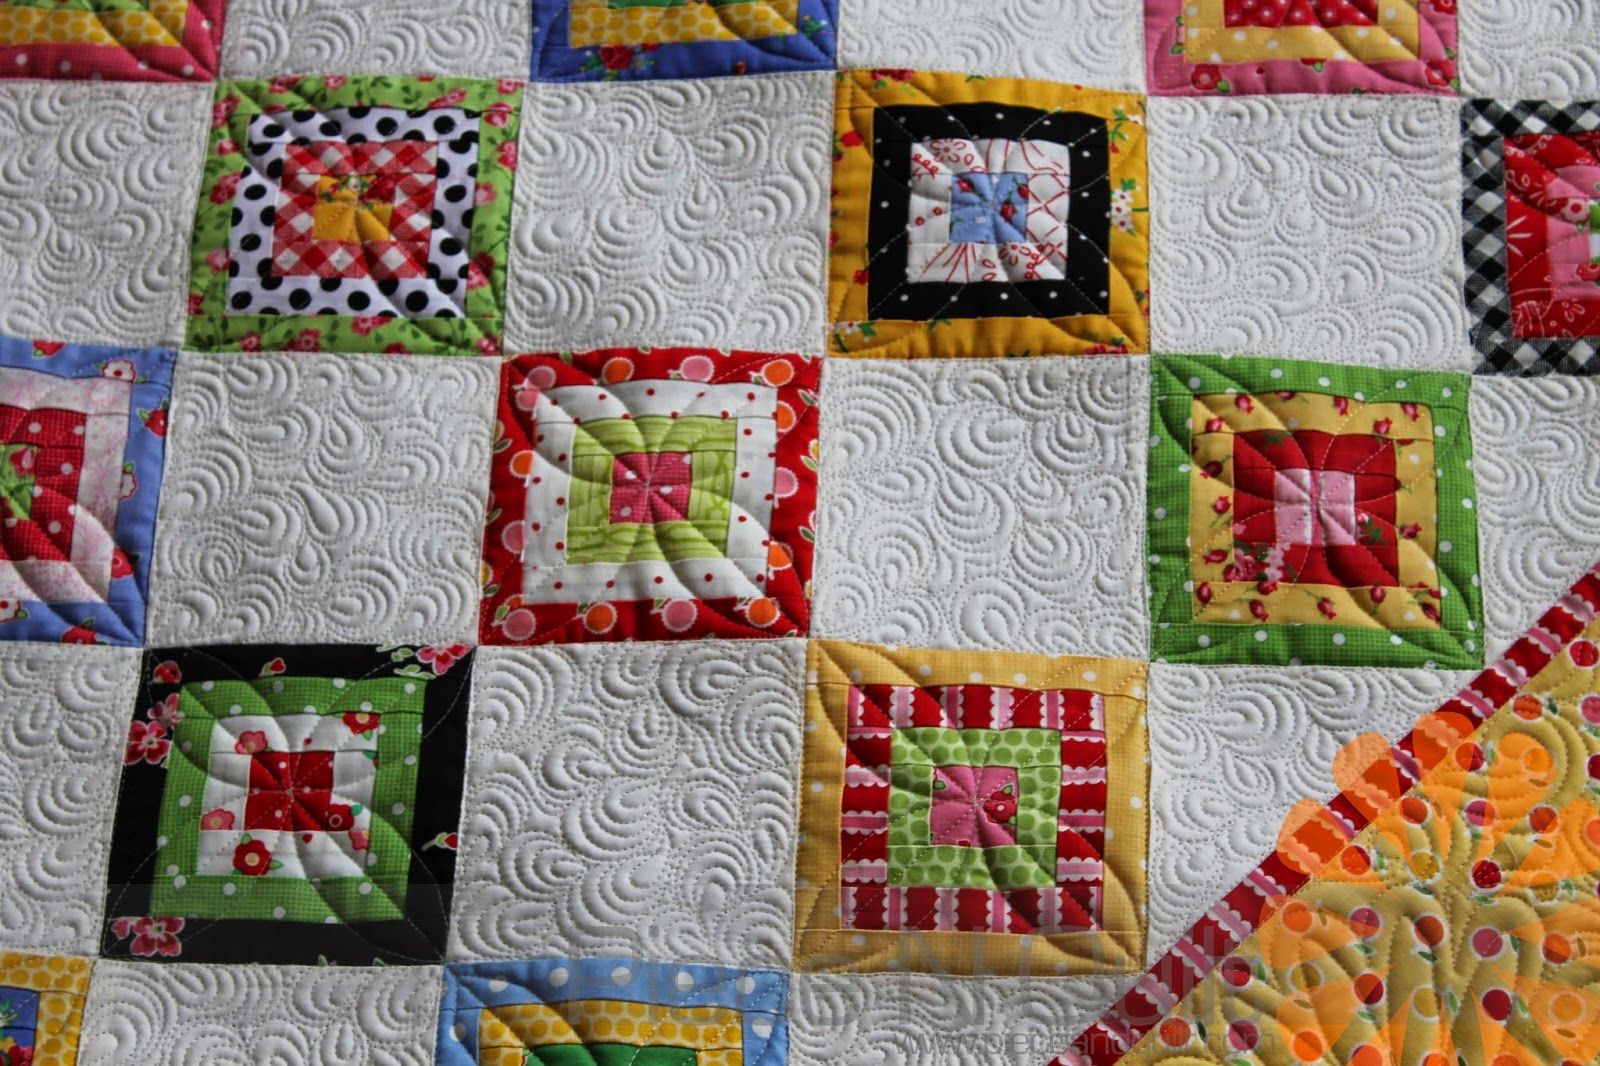 Piece N Quilt Tiny Blocks Custom Machine Quilting By Natalia Bonner